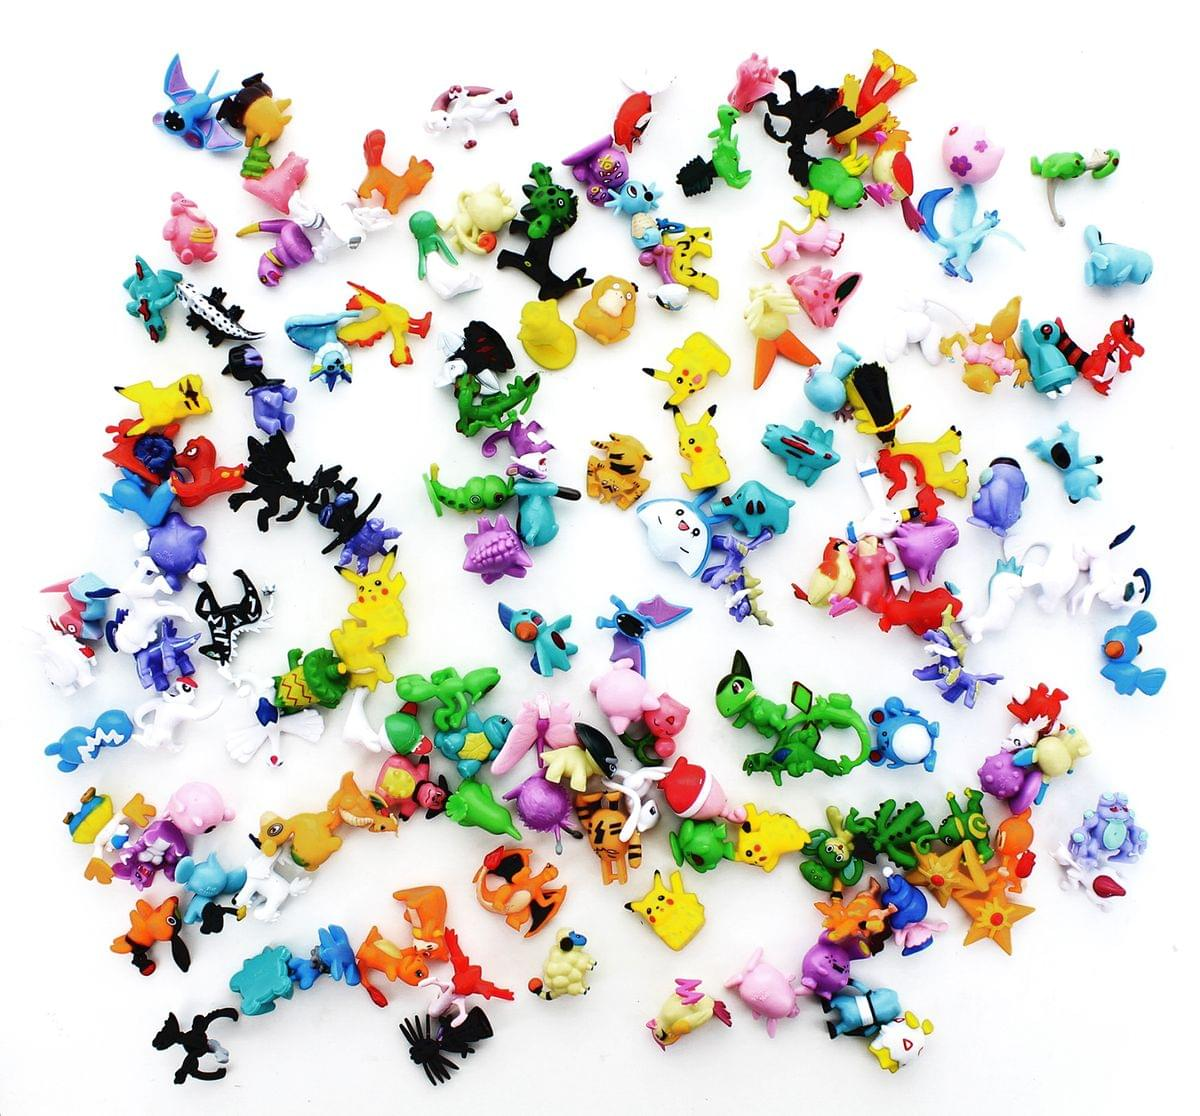 "Pokemon 1"" PVC Mini Figure: Lot of 144 Pieces by Hong Kong 4 U"